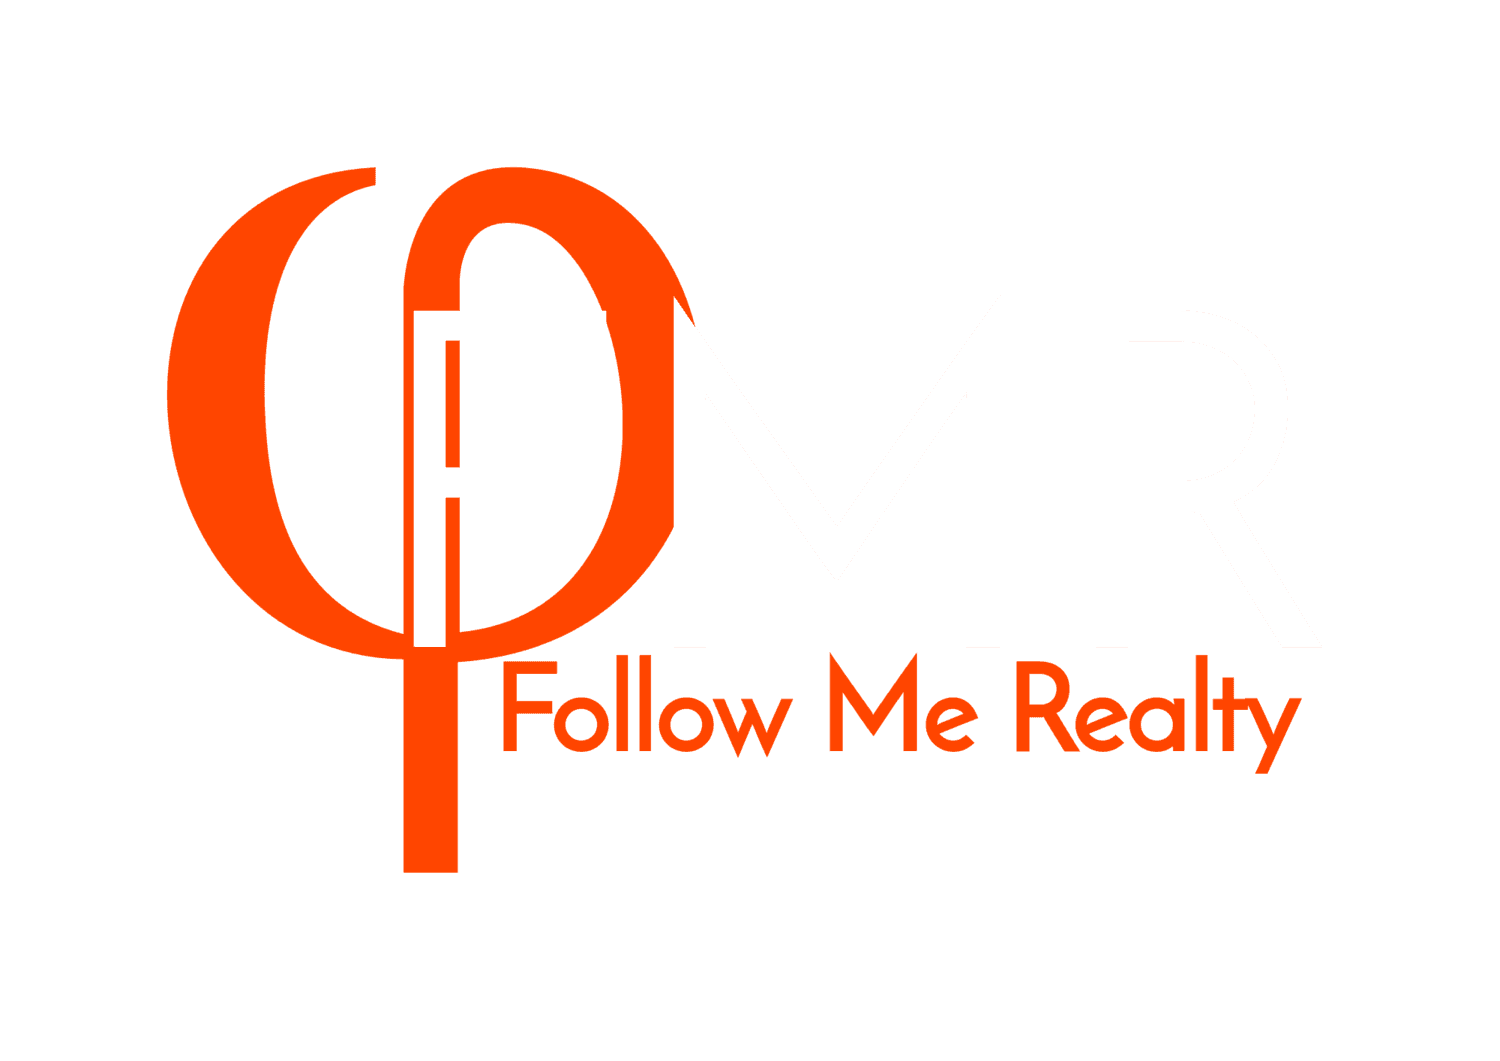 Follow Me Realty, virtual real estate.